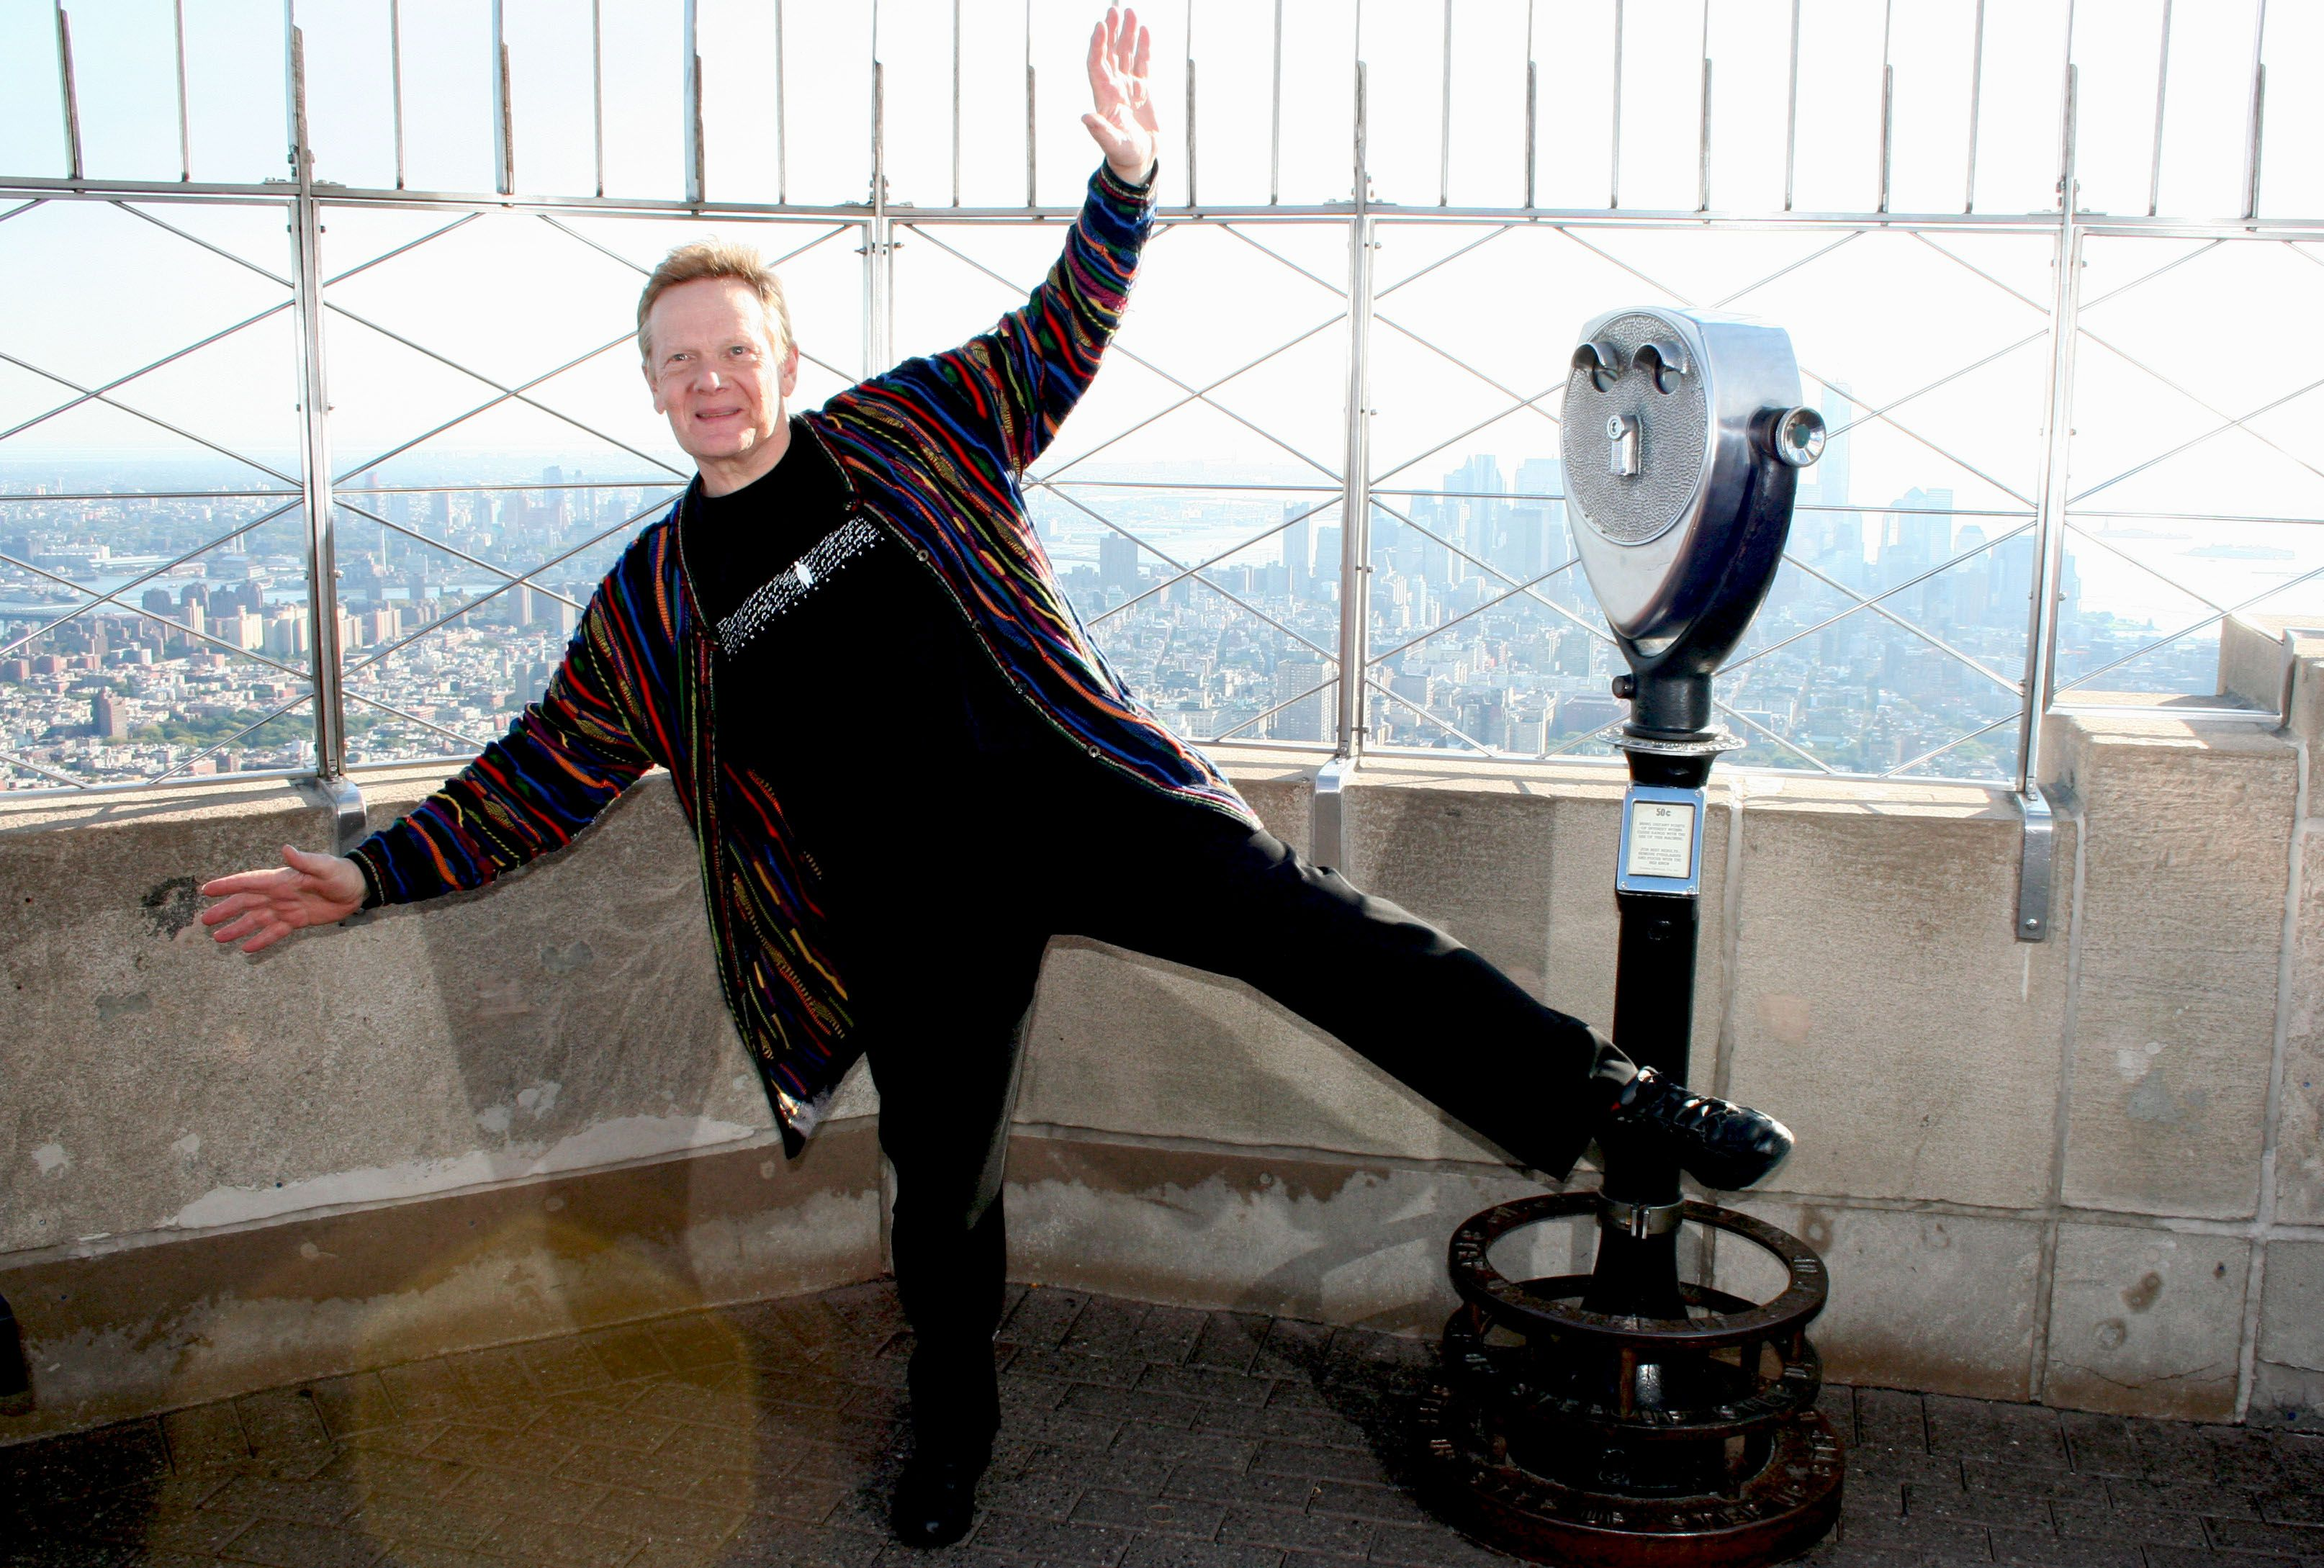 October 7, 2015 Renowned high wire artist Philippe Petit